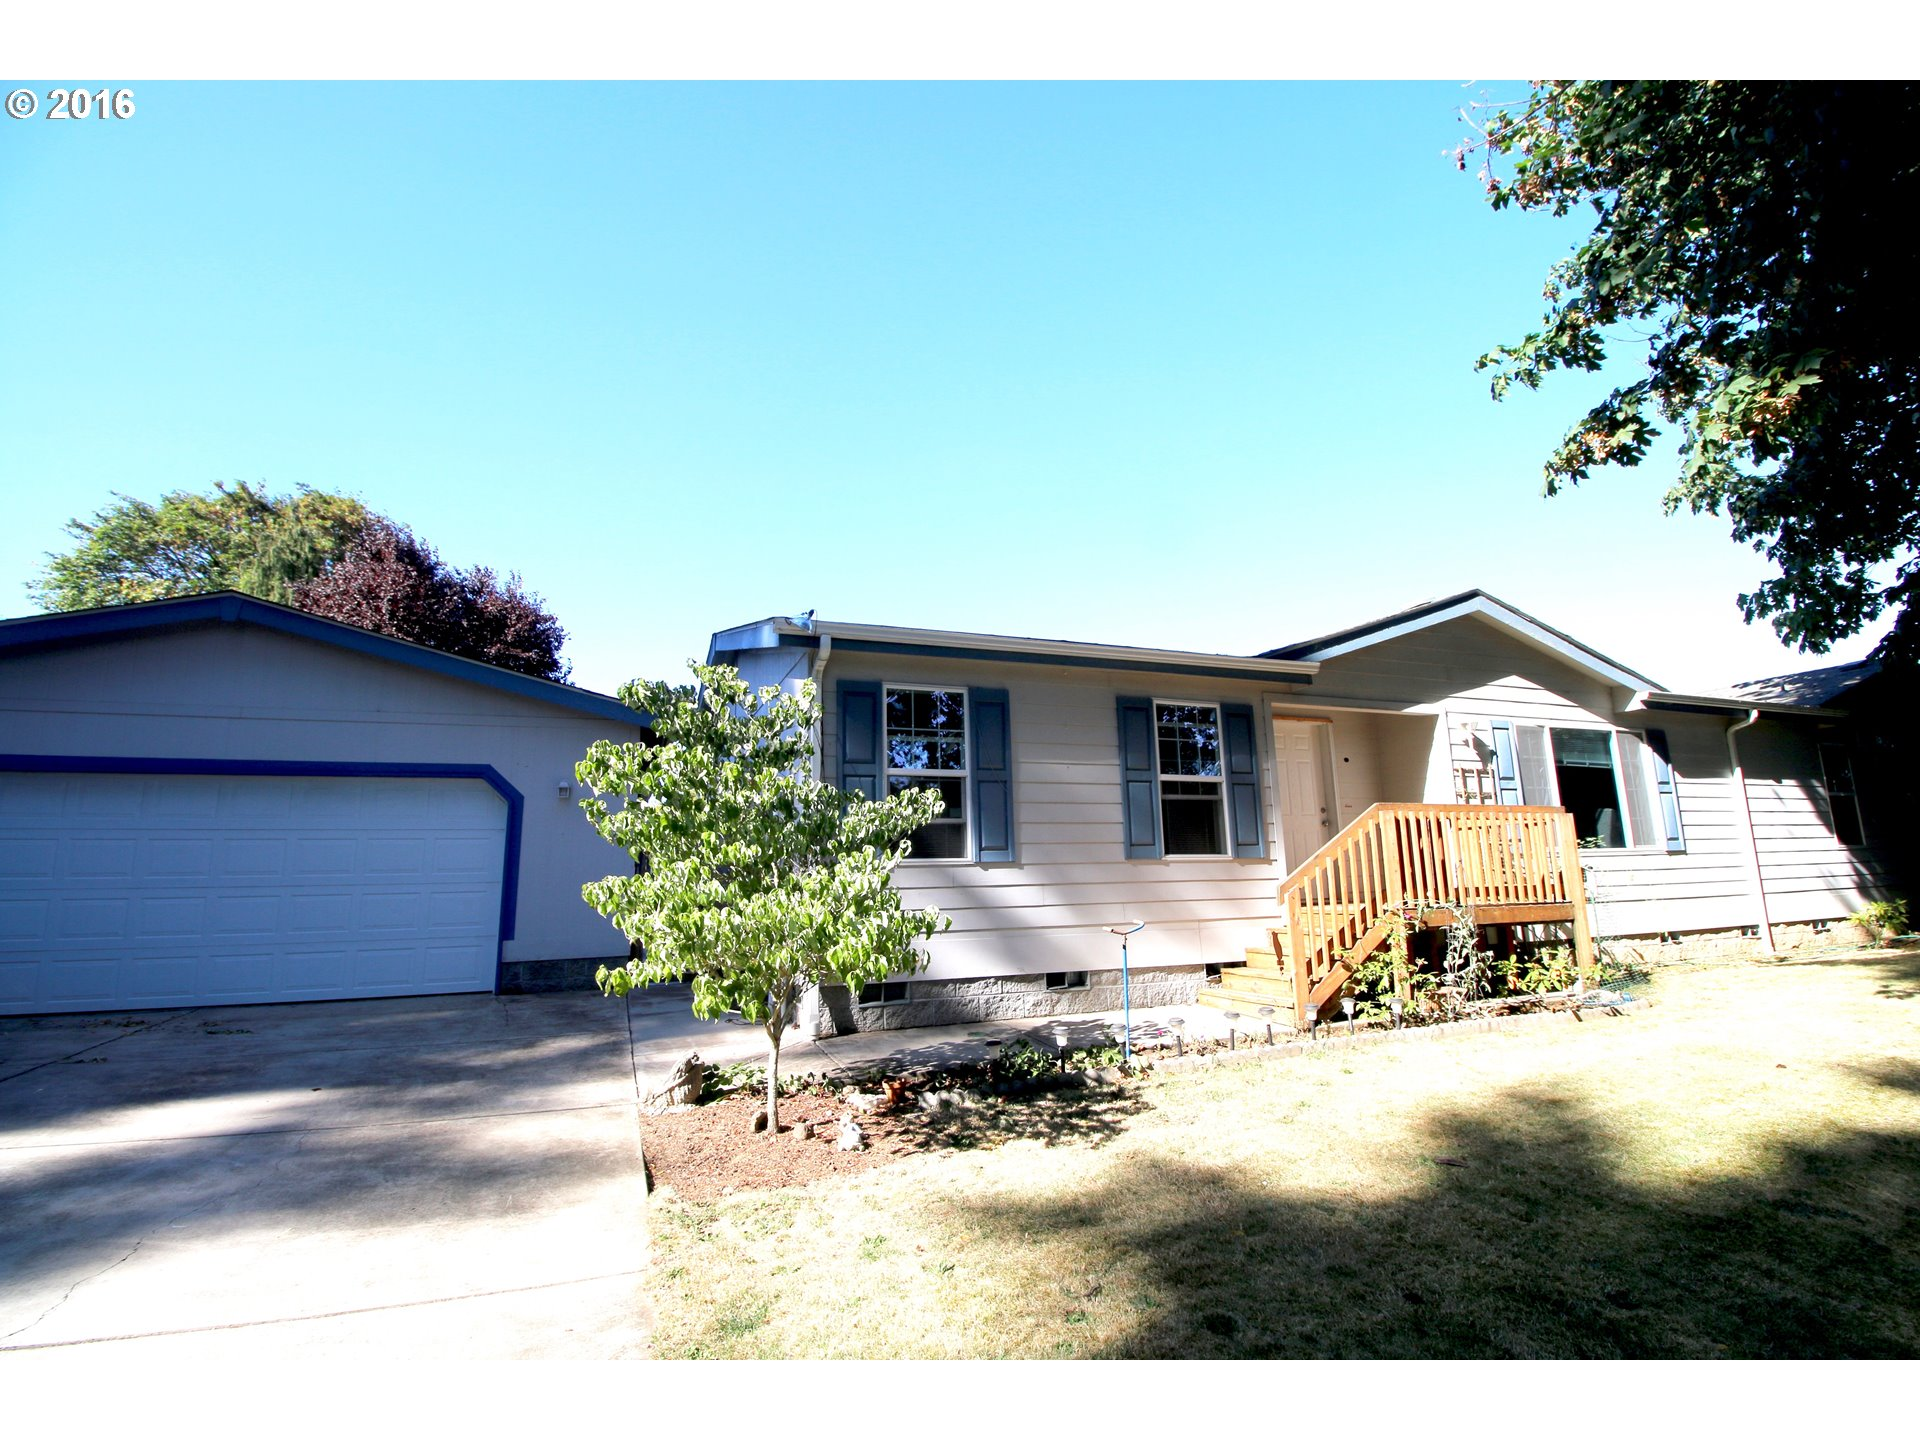 46 AVON ST, Creswell, OR 97426